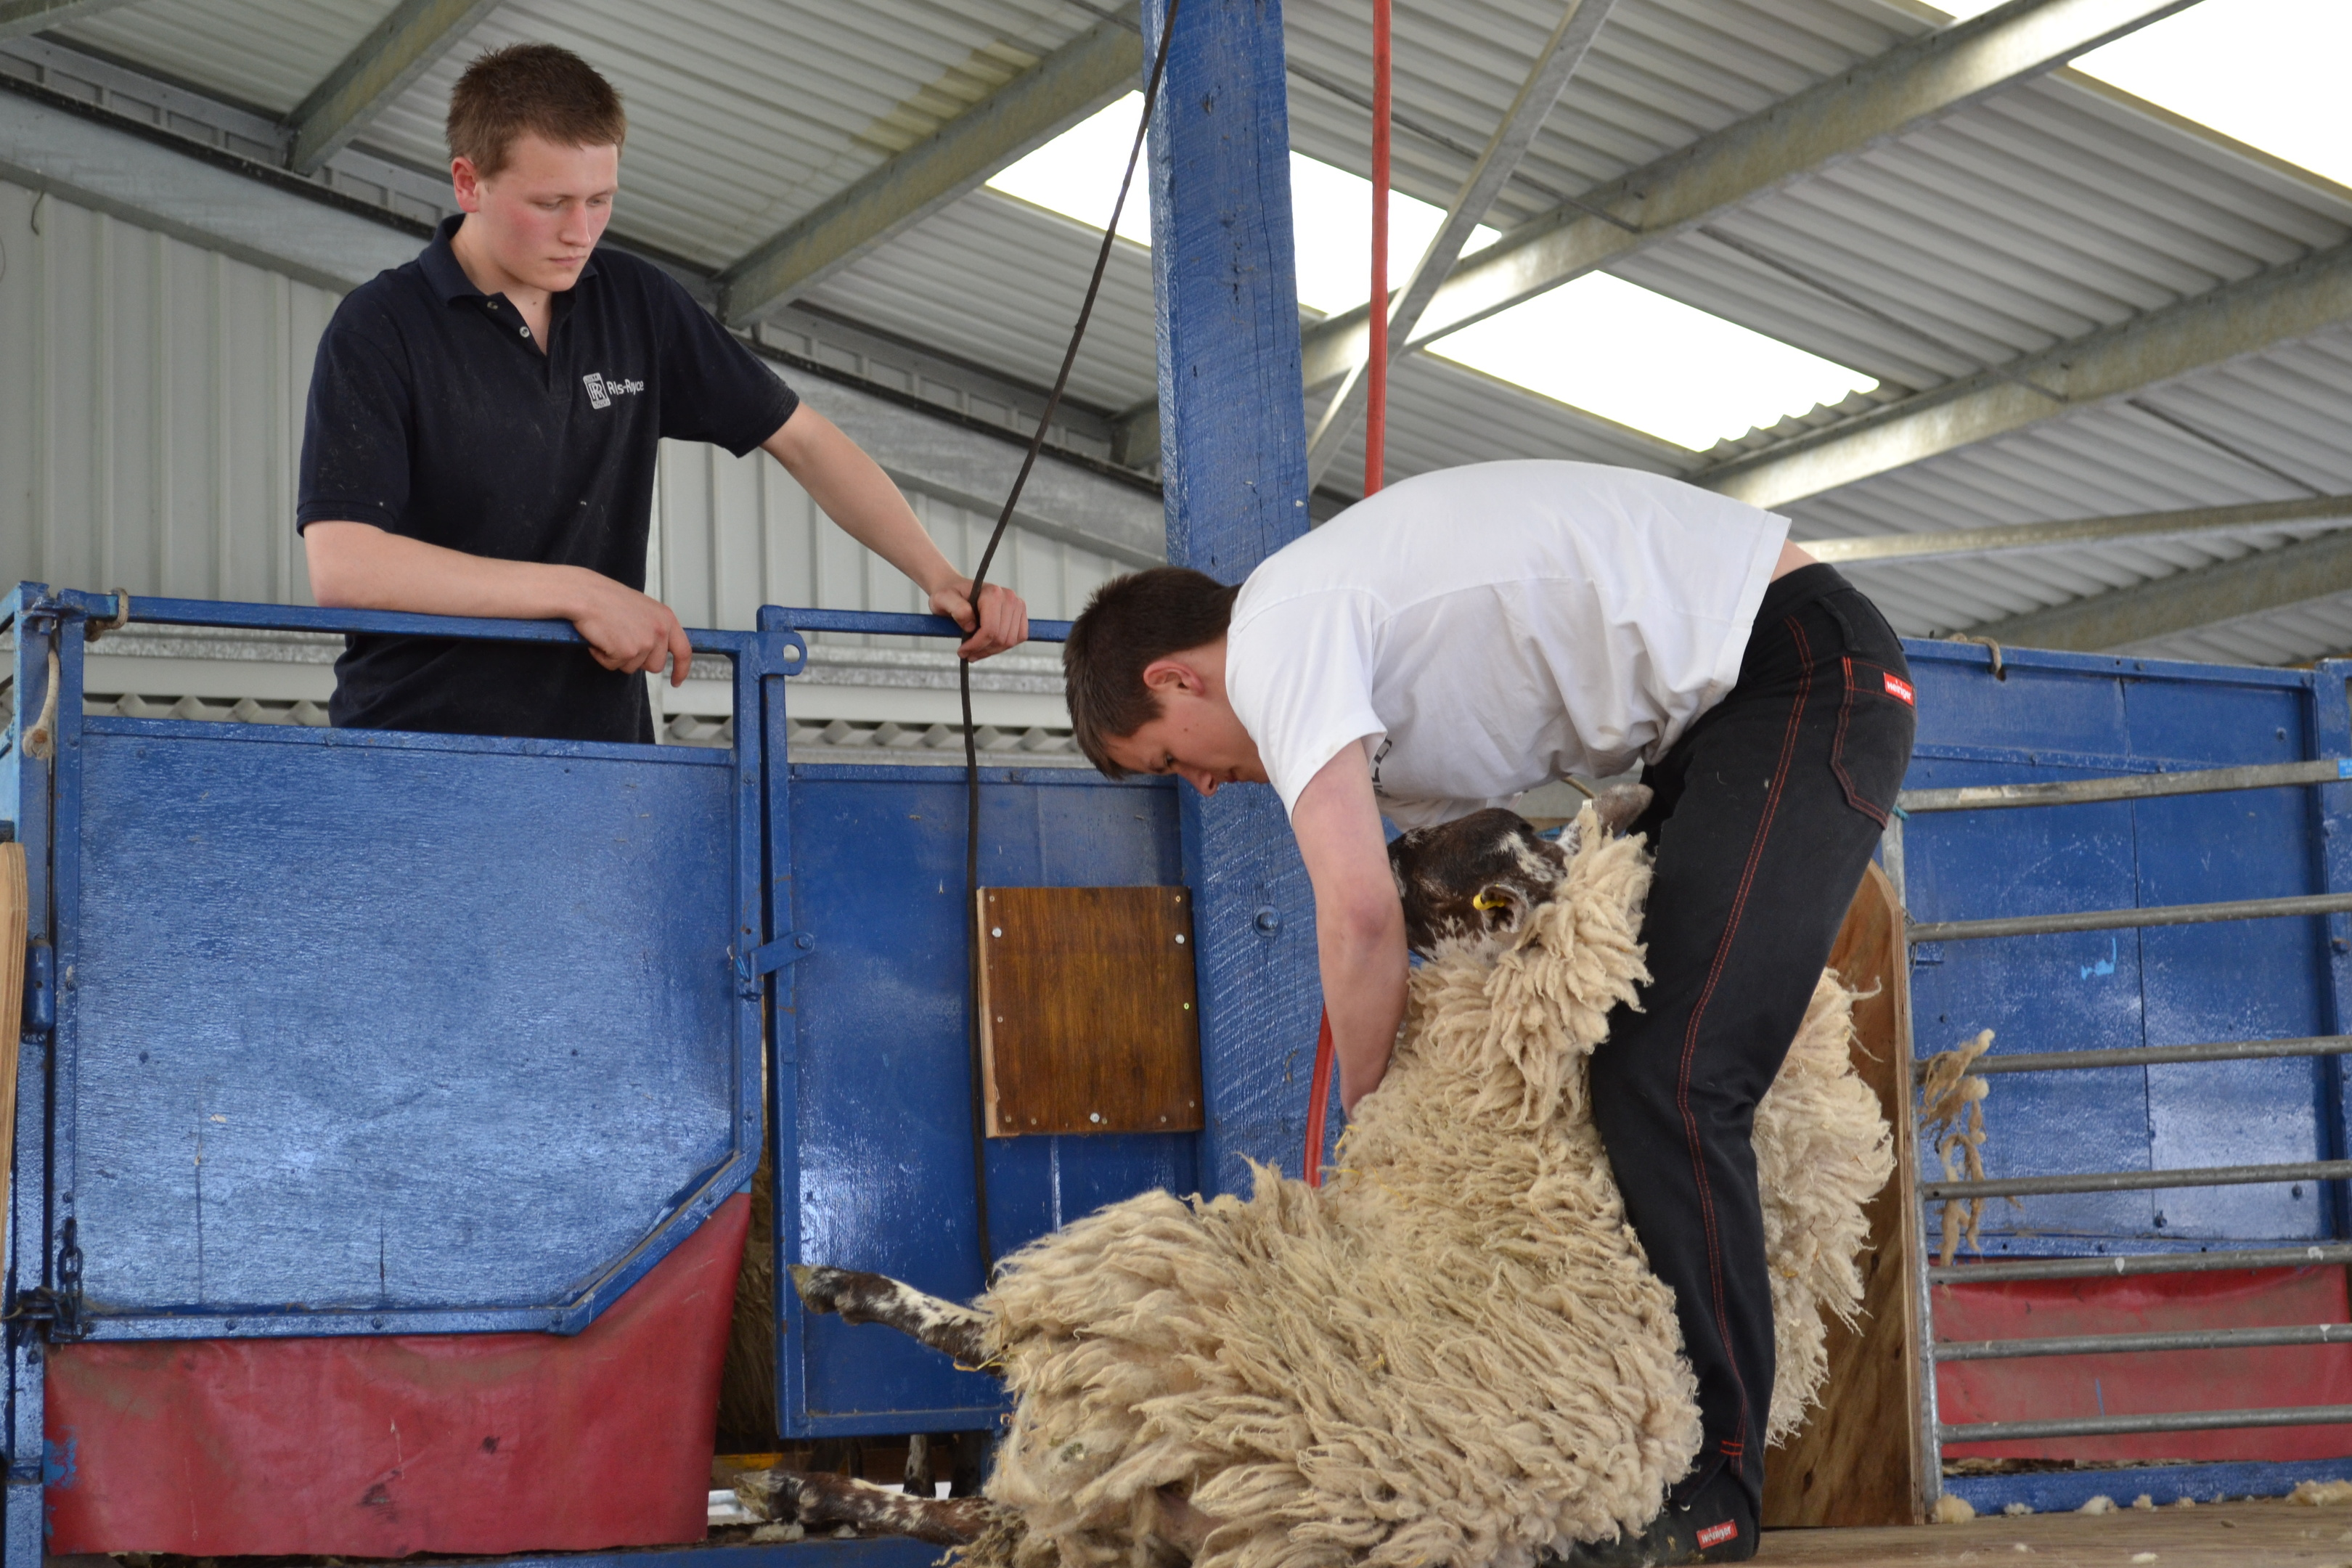 Wool prices are set to be up on last year